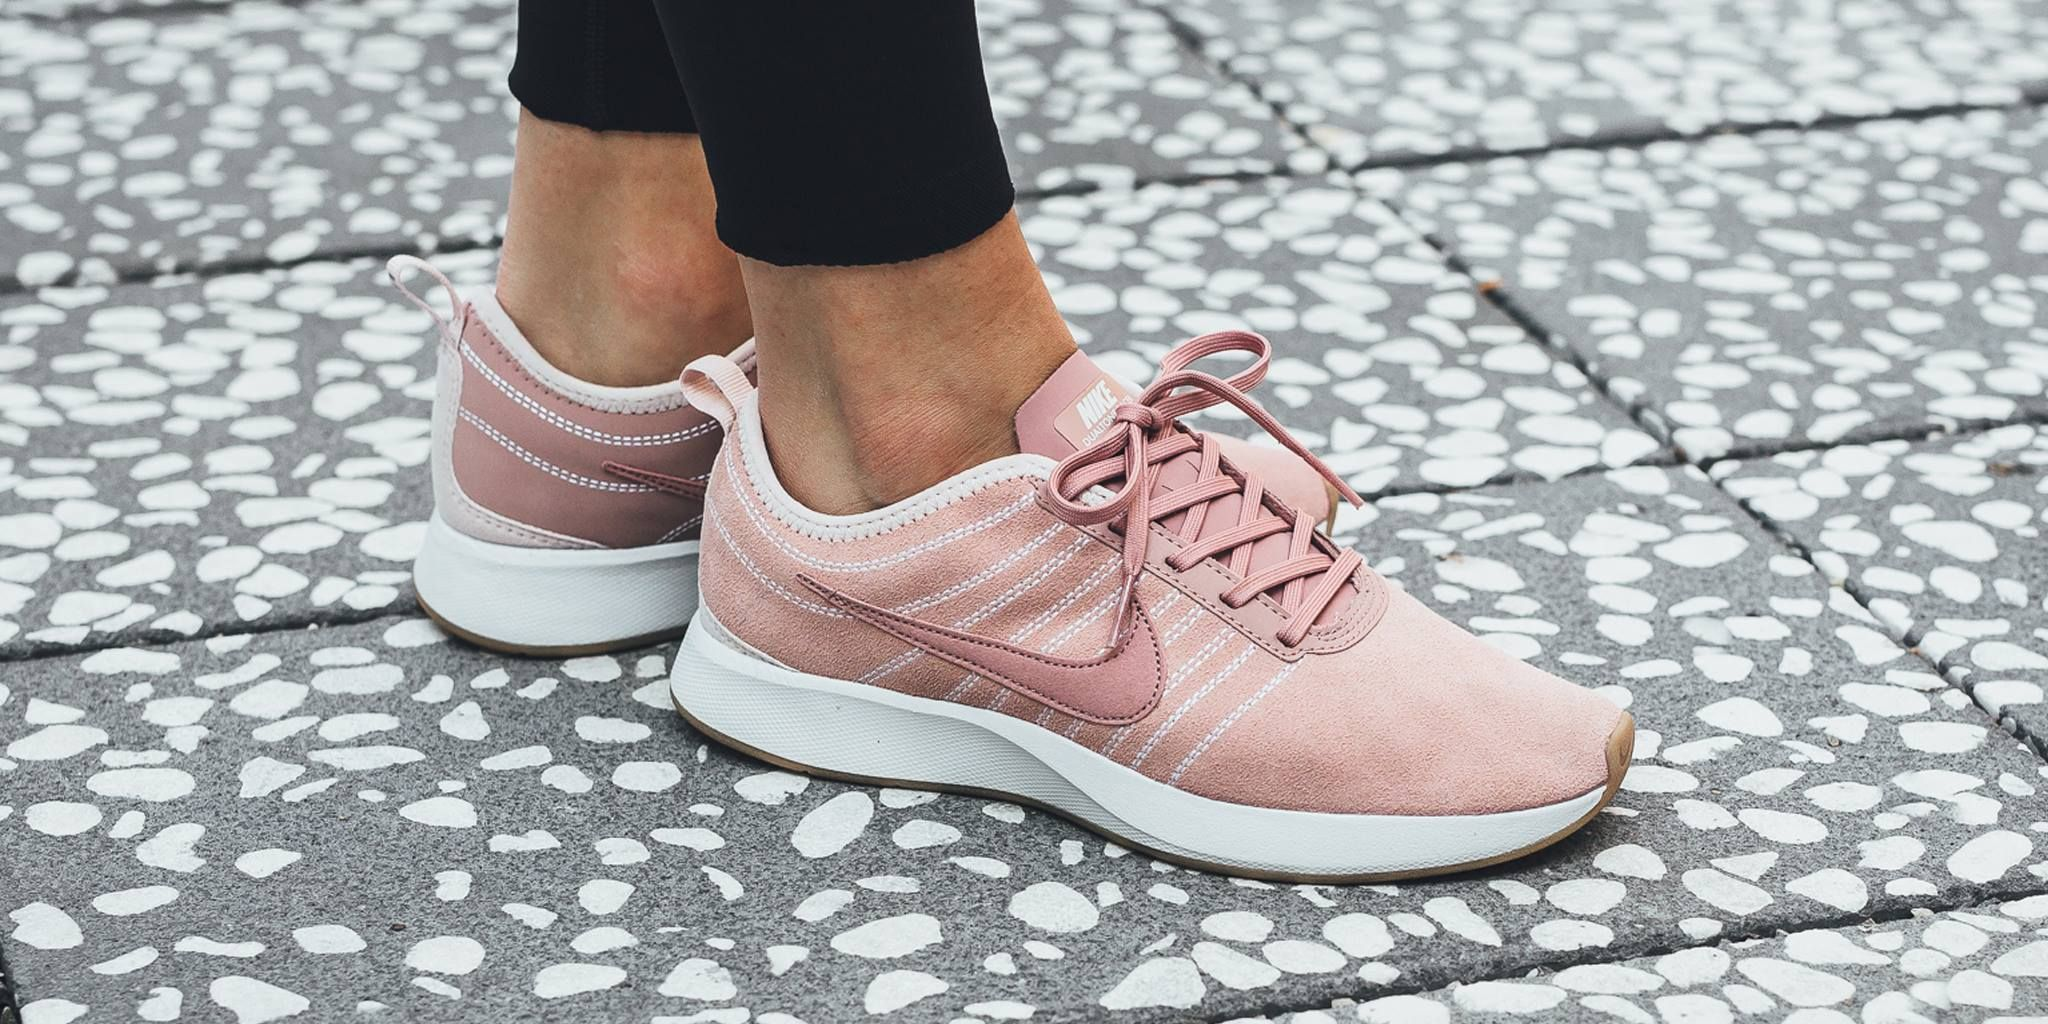 Particle Pink Covers The Latest Nike Dualtone Racer  462e457c52ae